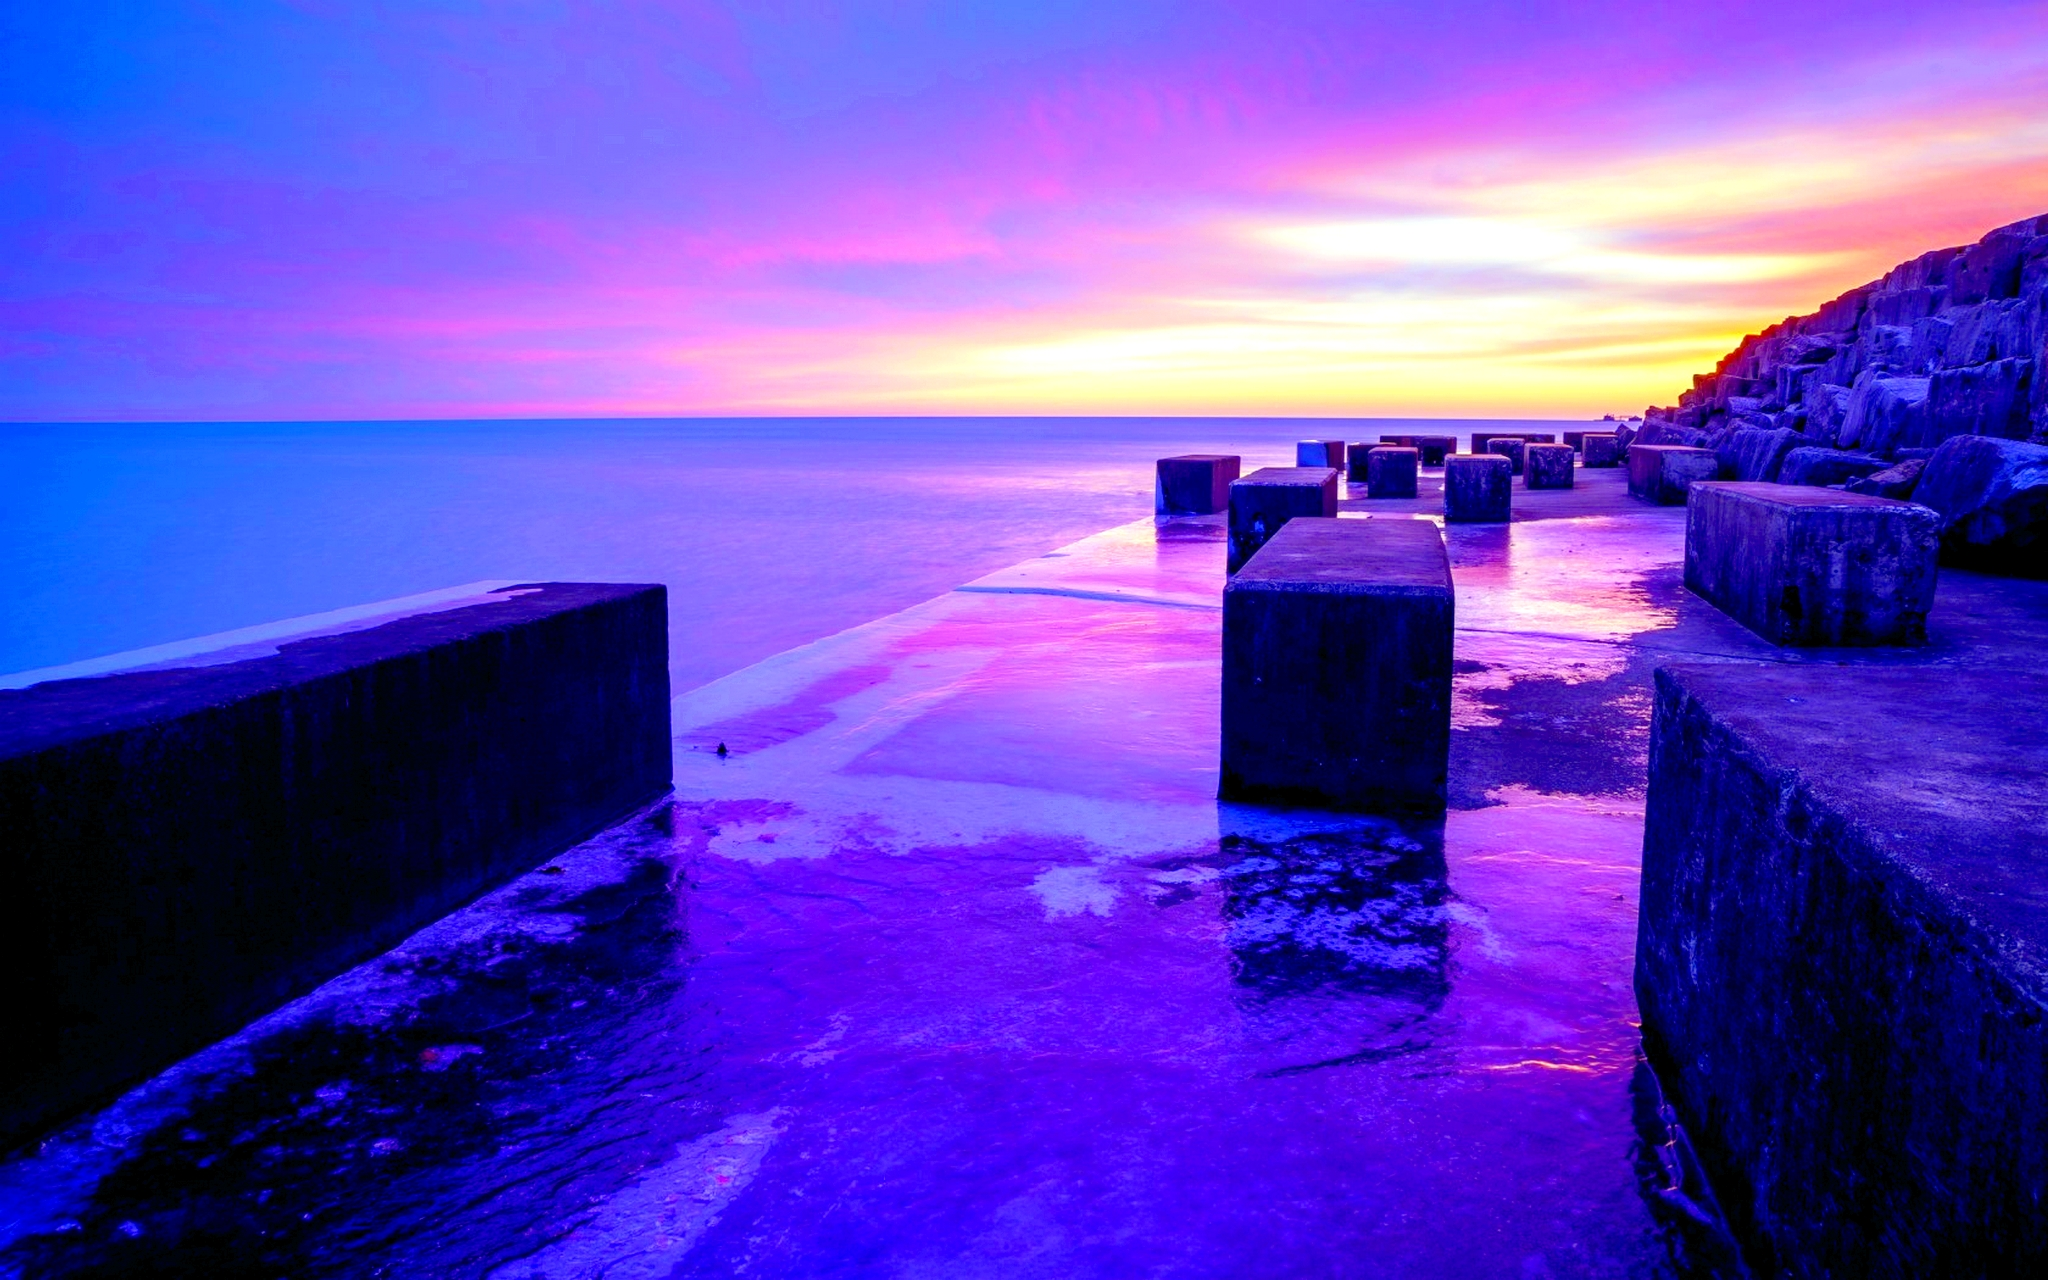 Purple Sunset Wallpaper 23192 2048x1280 px HDWallSourcecom 2048x1280